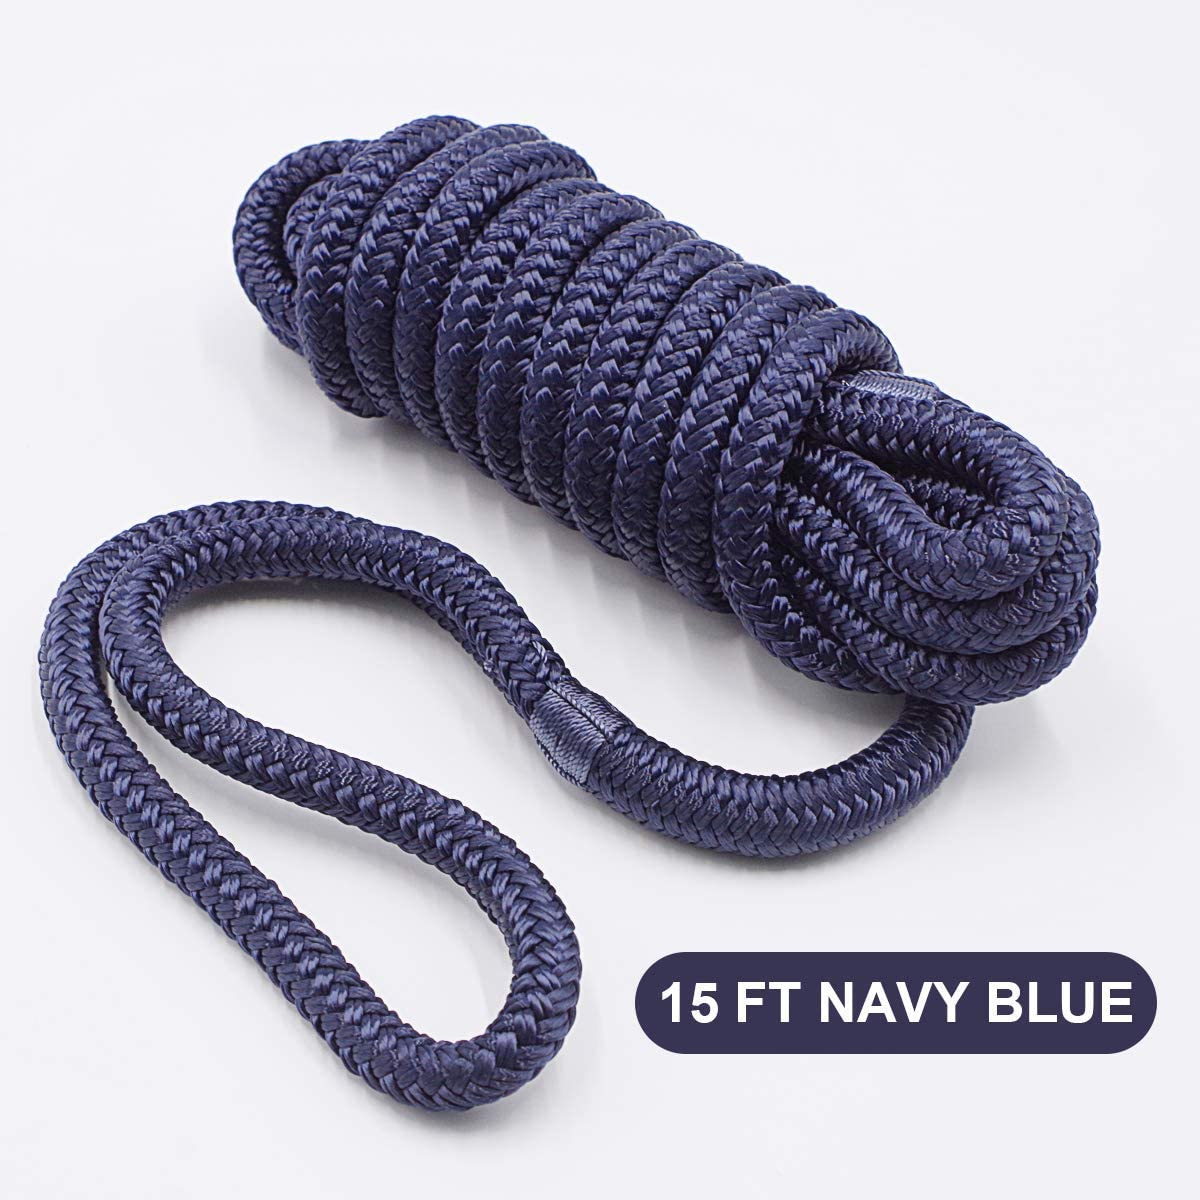 .Hi-Performance Marine Boats Mooring Rope Dock Line 4 Pack Navy Blue, L: 15 ft. D: 1//2 inch Eyelet: 12 inch, 4 Count INNOCEDEAR Double-Braided Nylon Dock Line